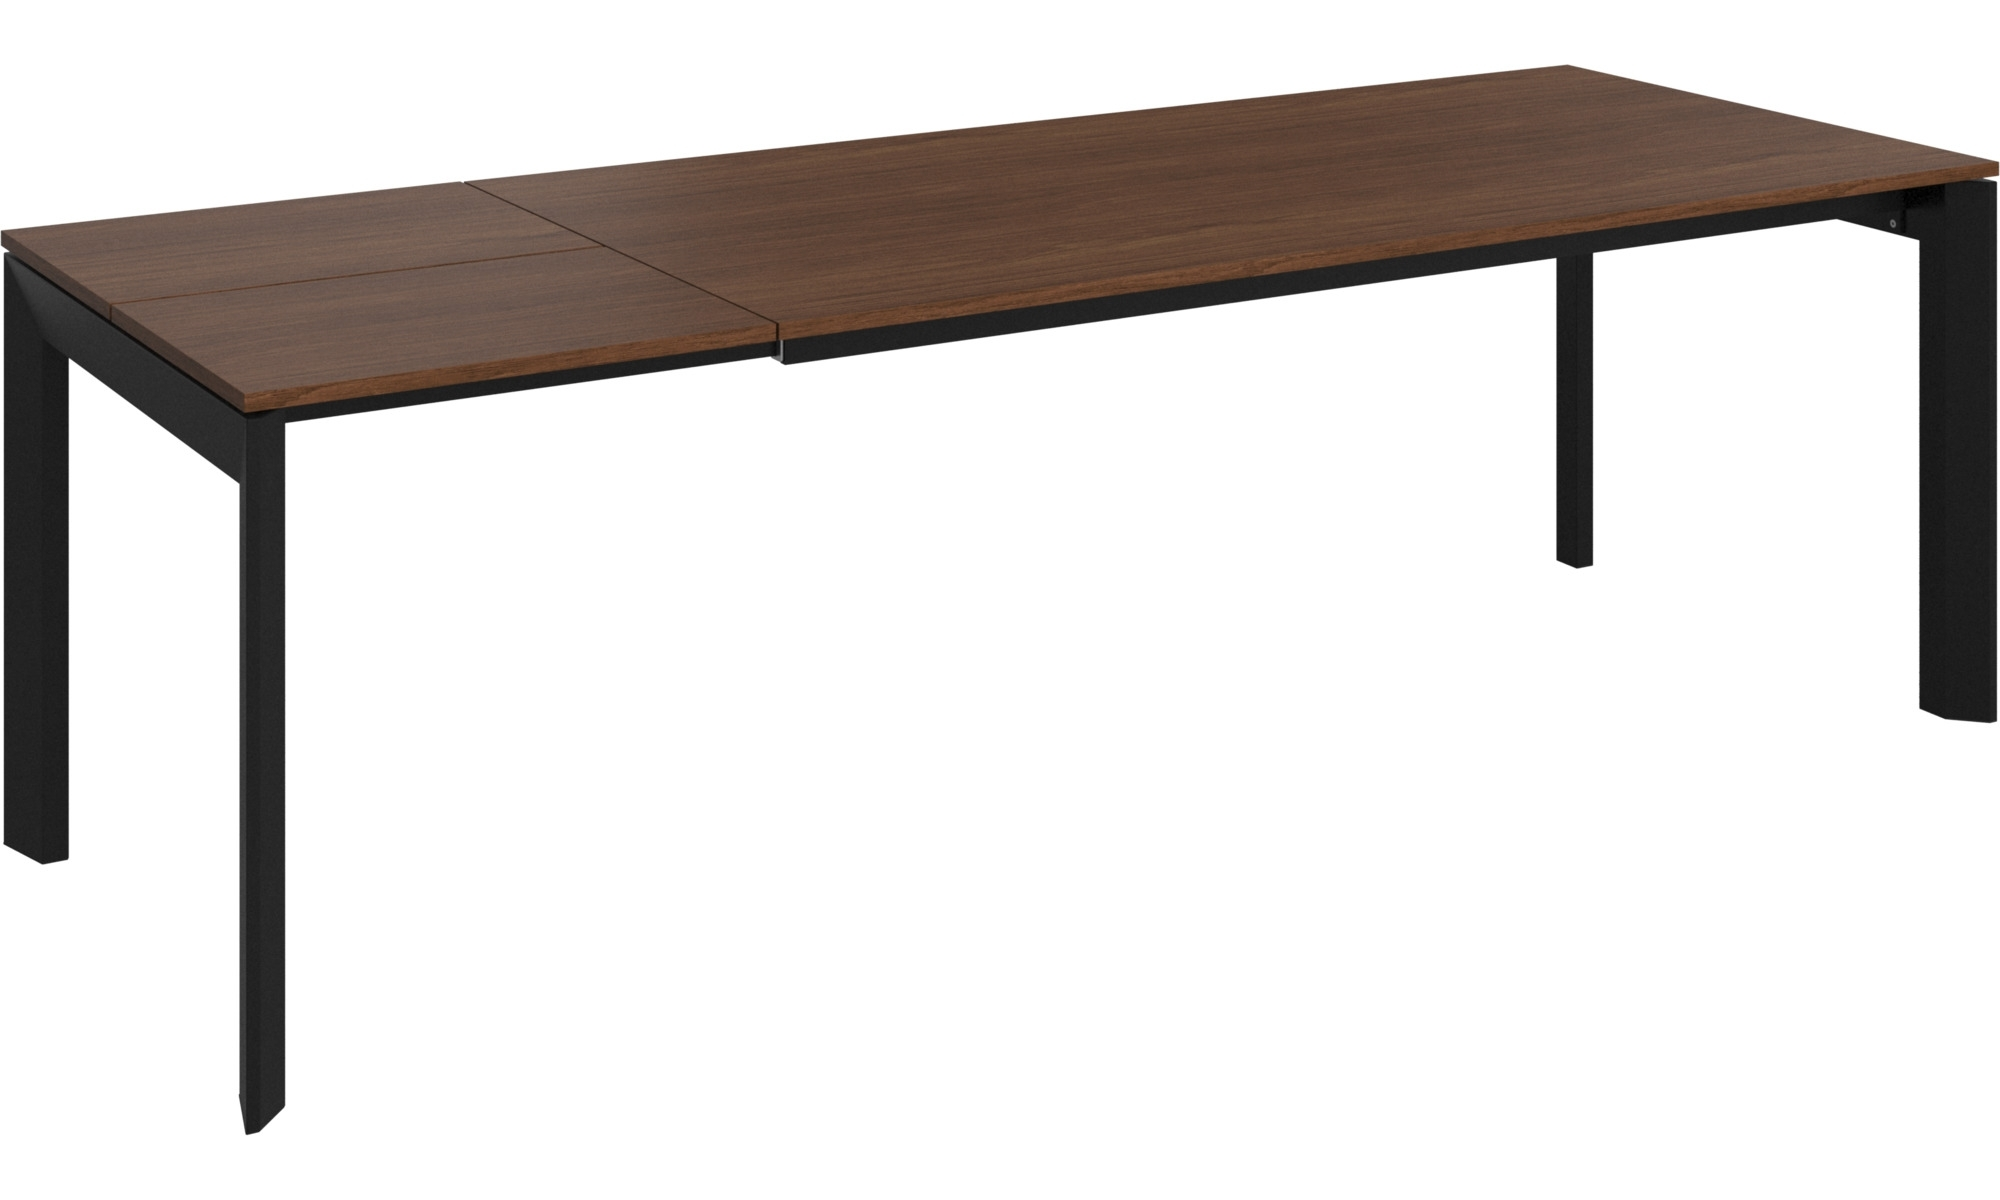 Dining Tables – Lyon Table With Supplementary Tabletop – Boconcept Throughout Famous Lyon Dining Tables (View 8 of 25)